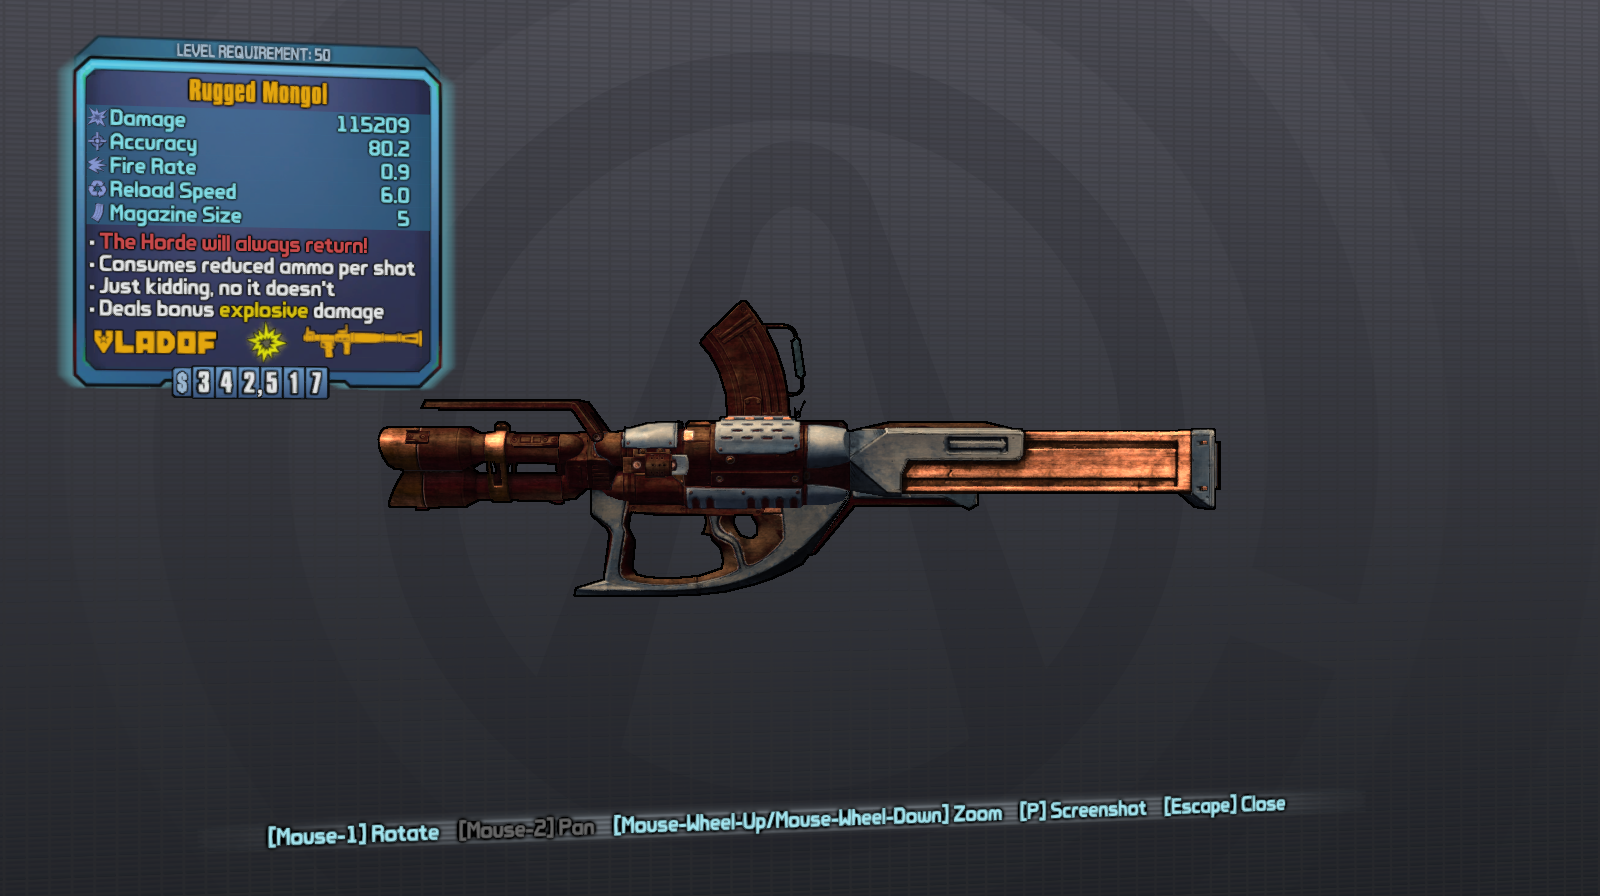 Mongol: Borderlands 2 Legendary Weapons | Borderlands 2